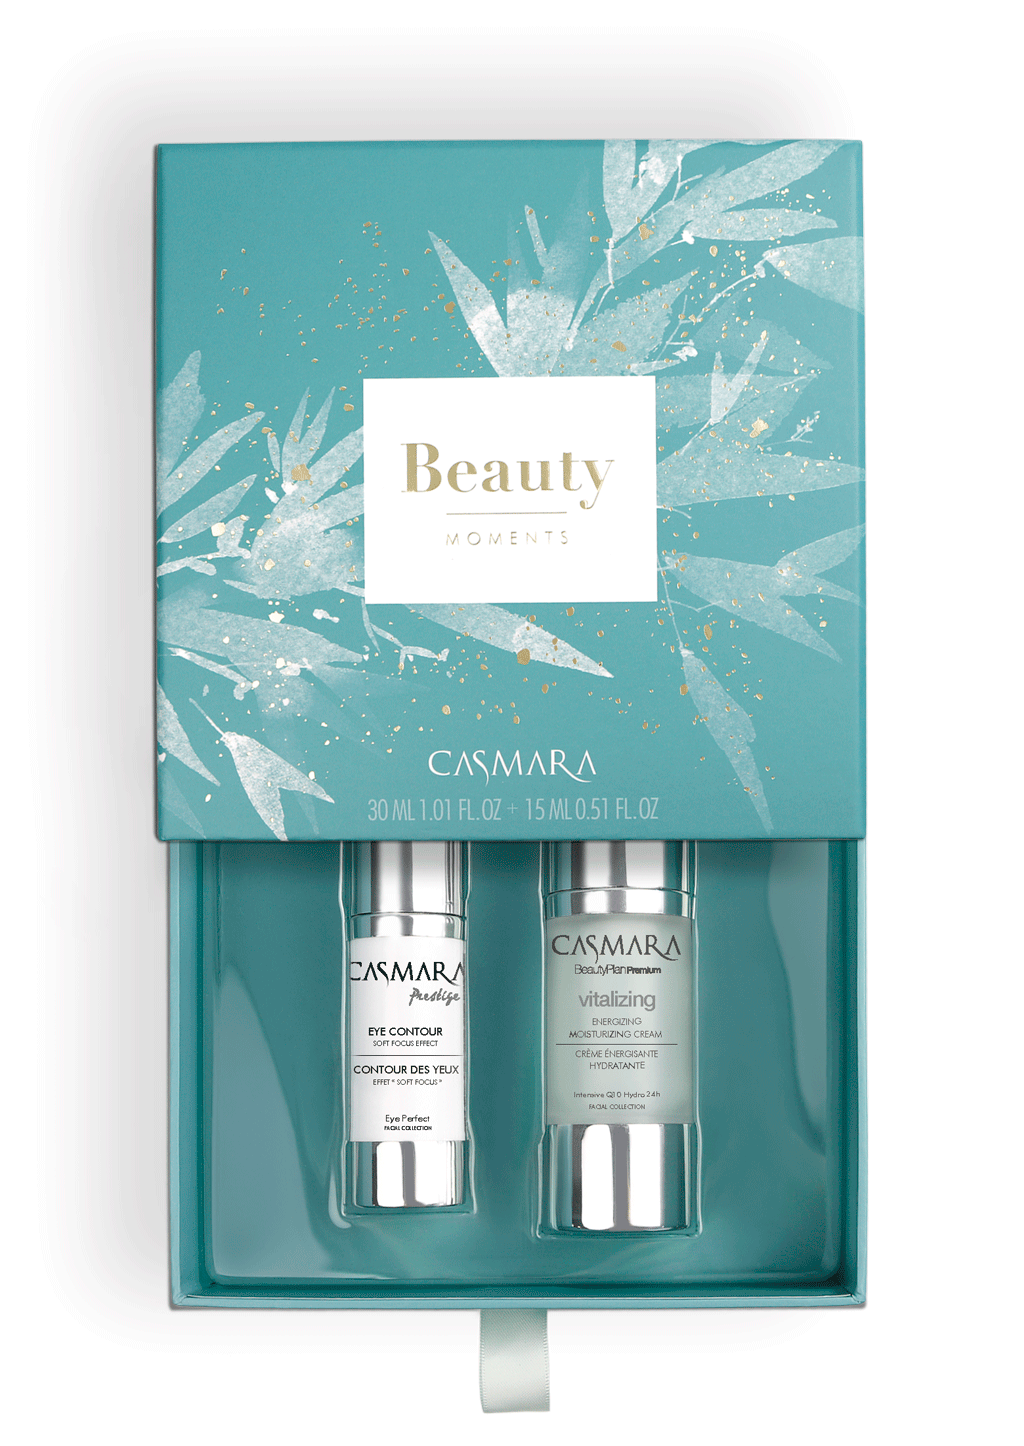 casmara luxury beauty moments box